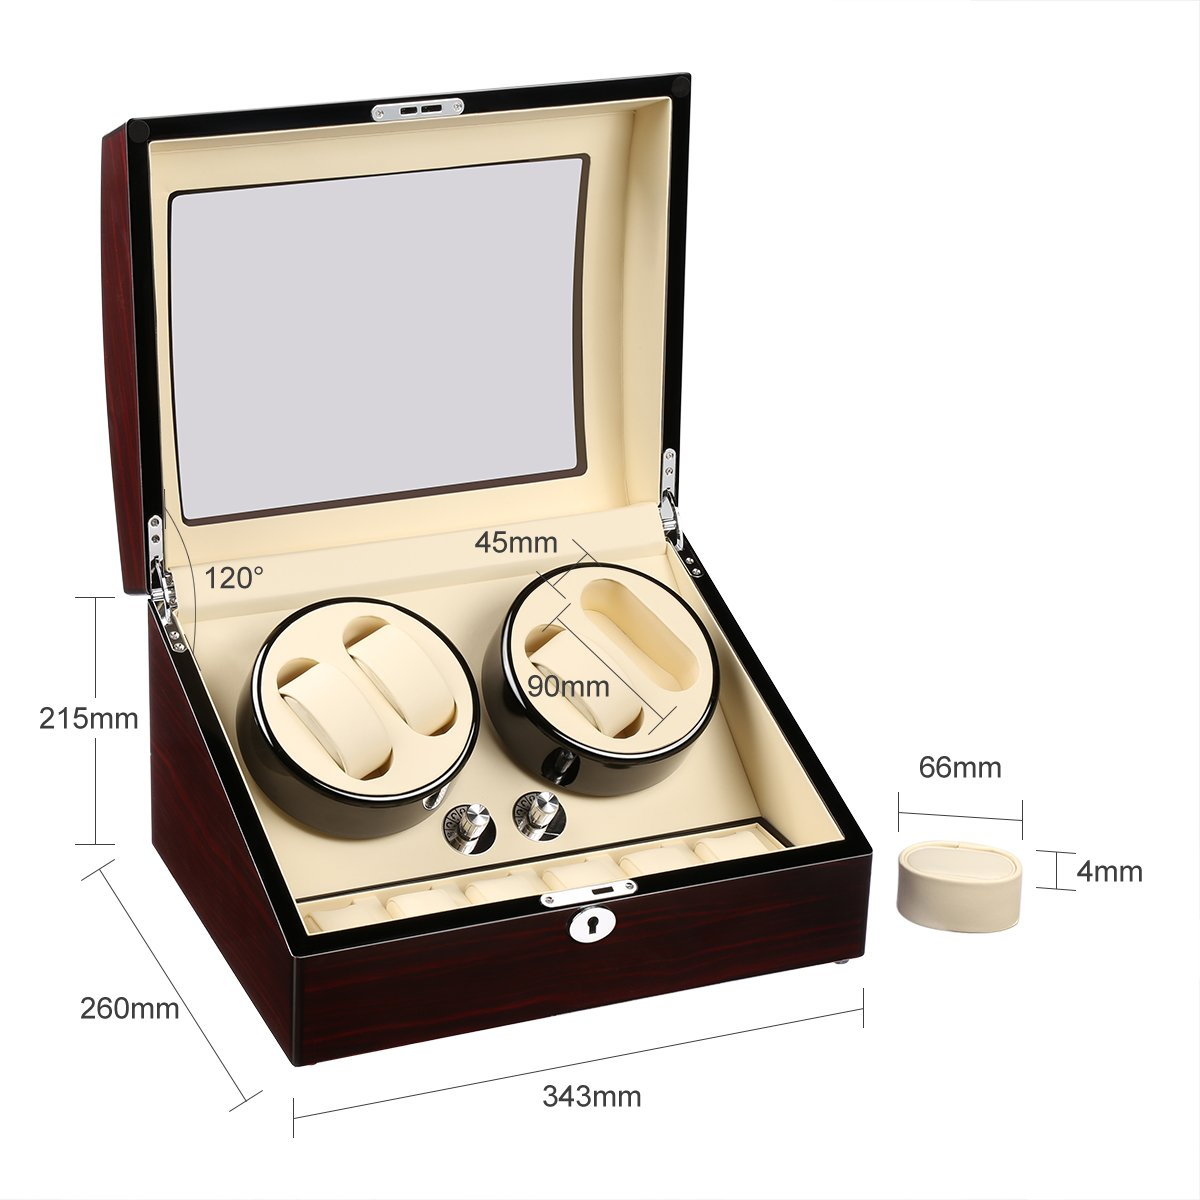 CRITIRON 4+6 Automatic Watch Winder Luxury Storage Case Rotating Display Box, Wood Shell with Piano Paint (Brown+White) by CRITIRON (Image #7)